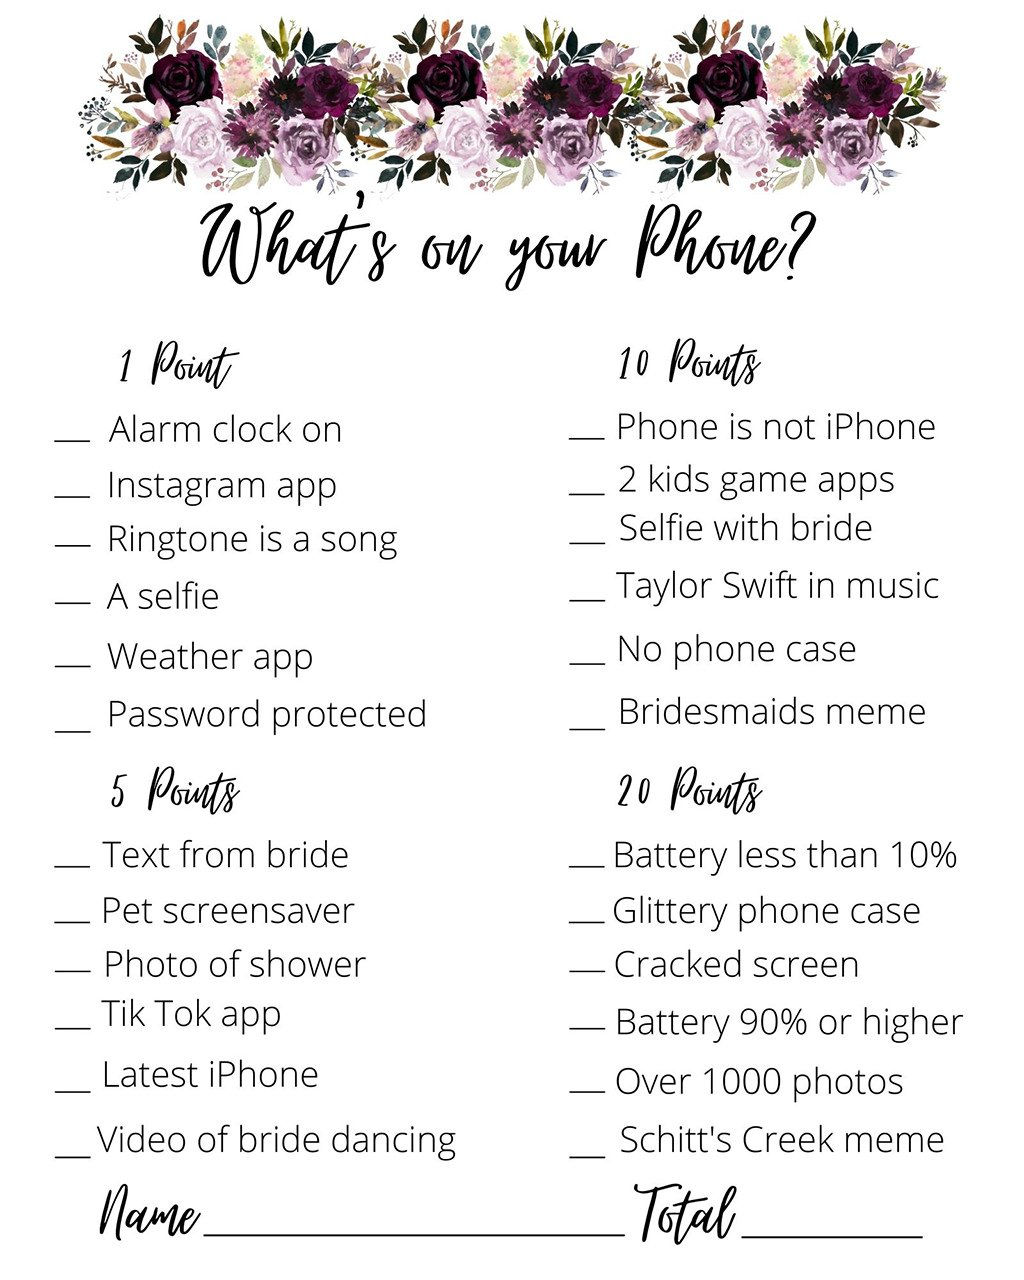 A printable from the bridal shower game what's on your phone